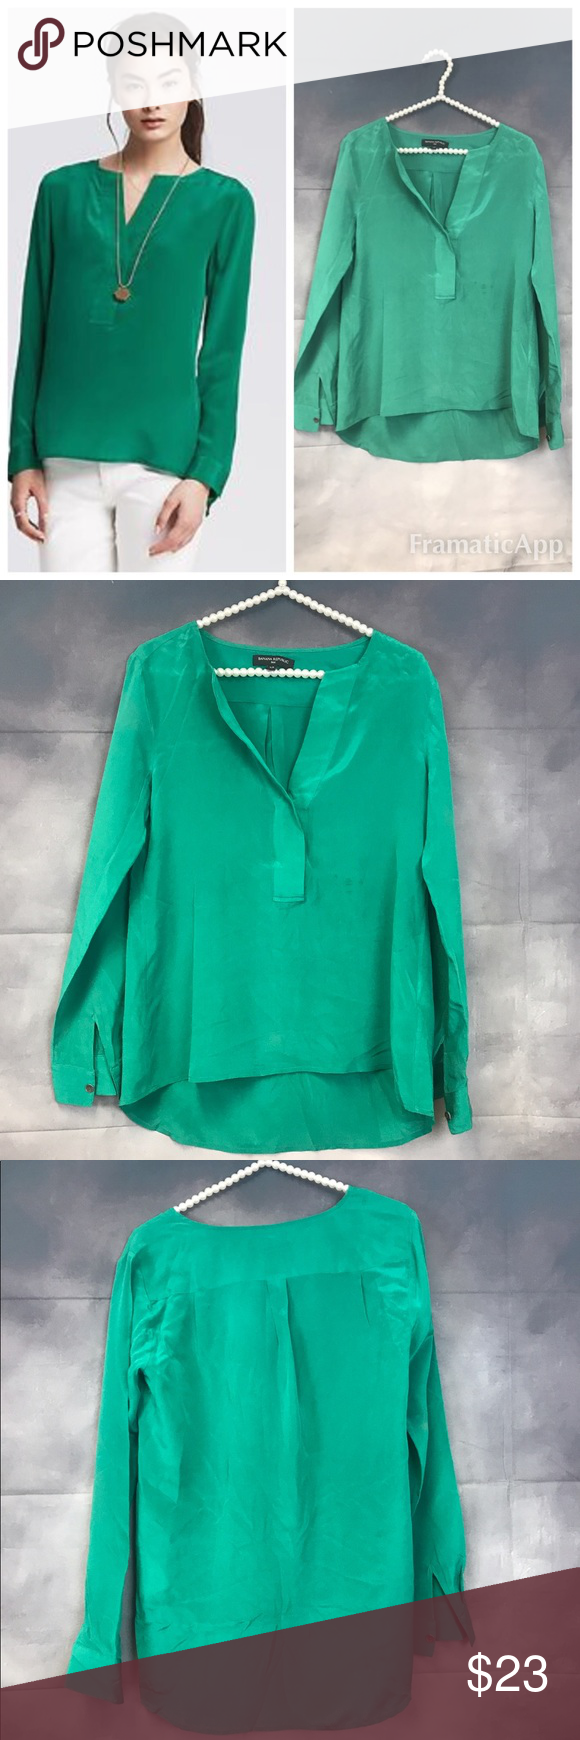 """BANANA REPUBLIC PINTUCK GrEEN SILK TUNIC TOP Style: Pintuck blouse all silk tunic. There is a stain in the front which can be dry clean. Soft slowy material. Measurements of item laying flat and straight across: Bust:19"""" Length (back): 28"""" (front) 21"""" Banana Republic Tops Blouses"""